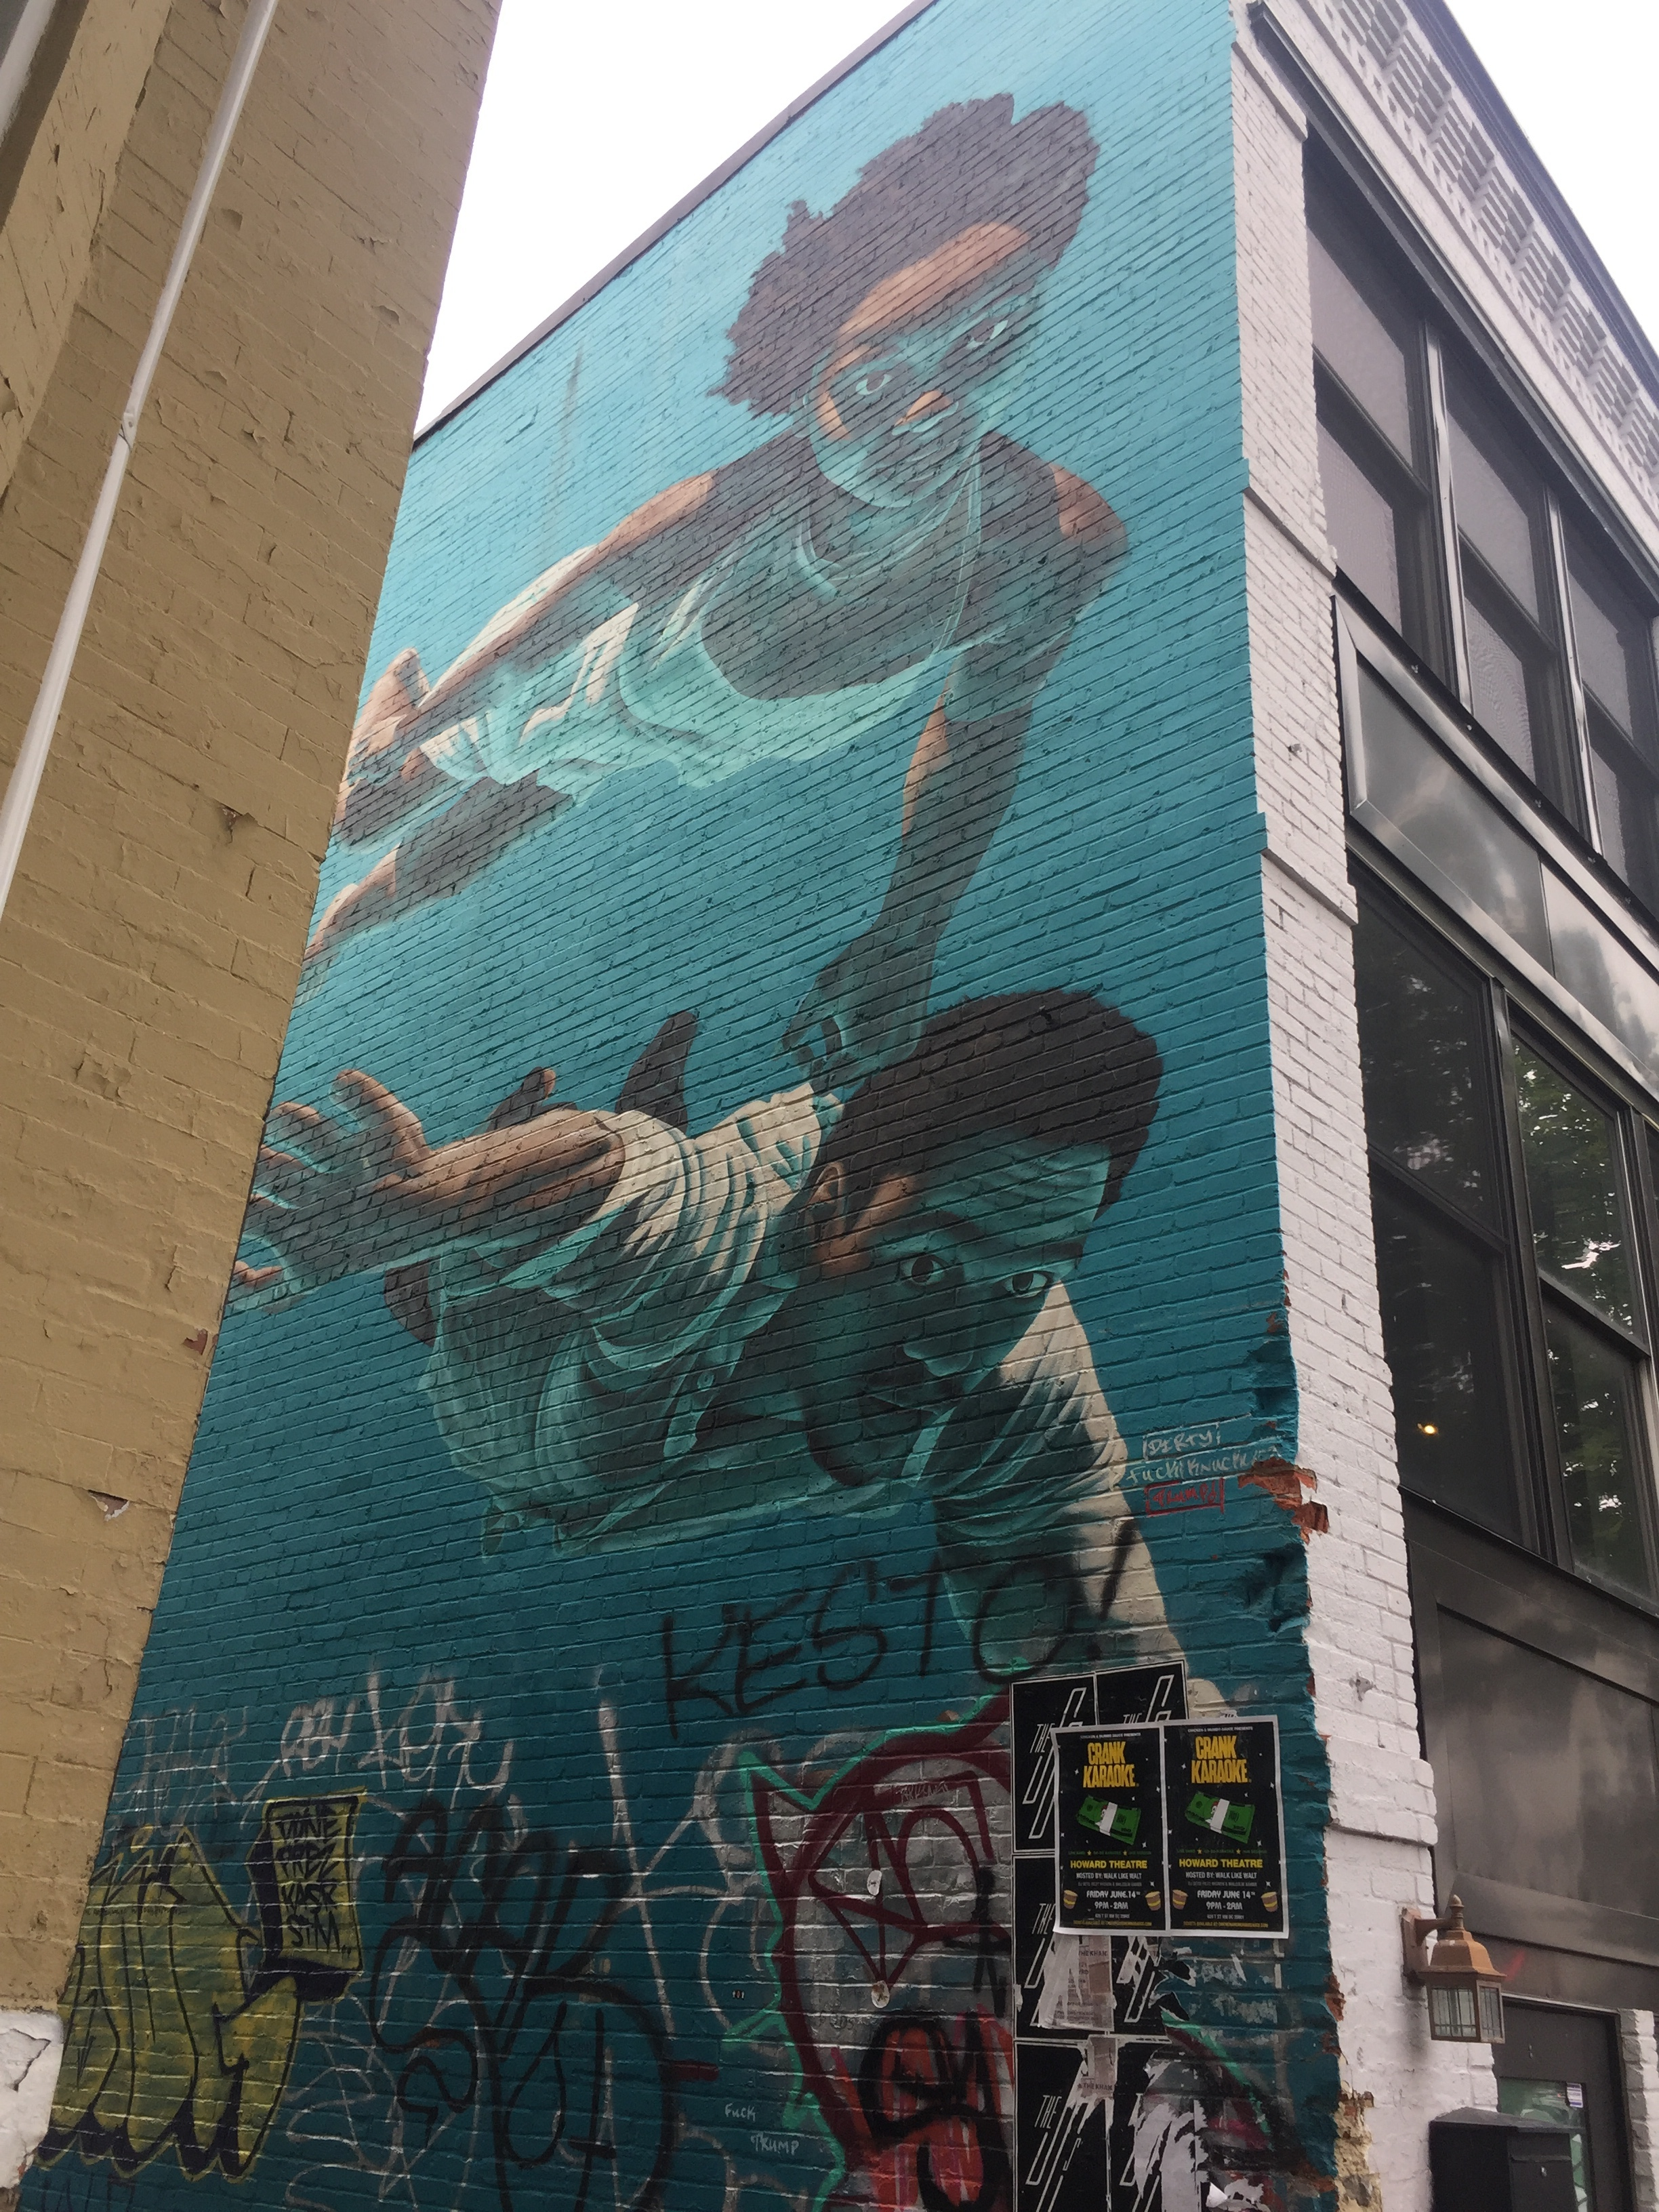 Chasing Dreams Water Mural in Washington, D.C. | Best Instagram Murals